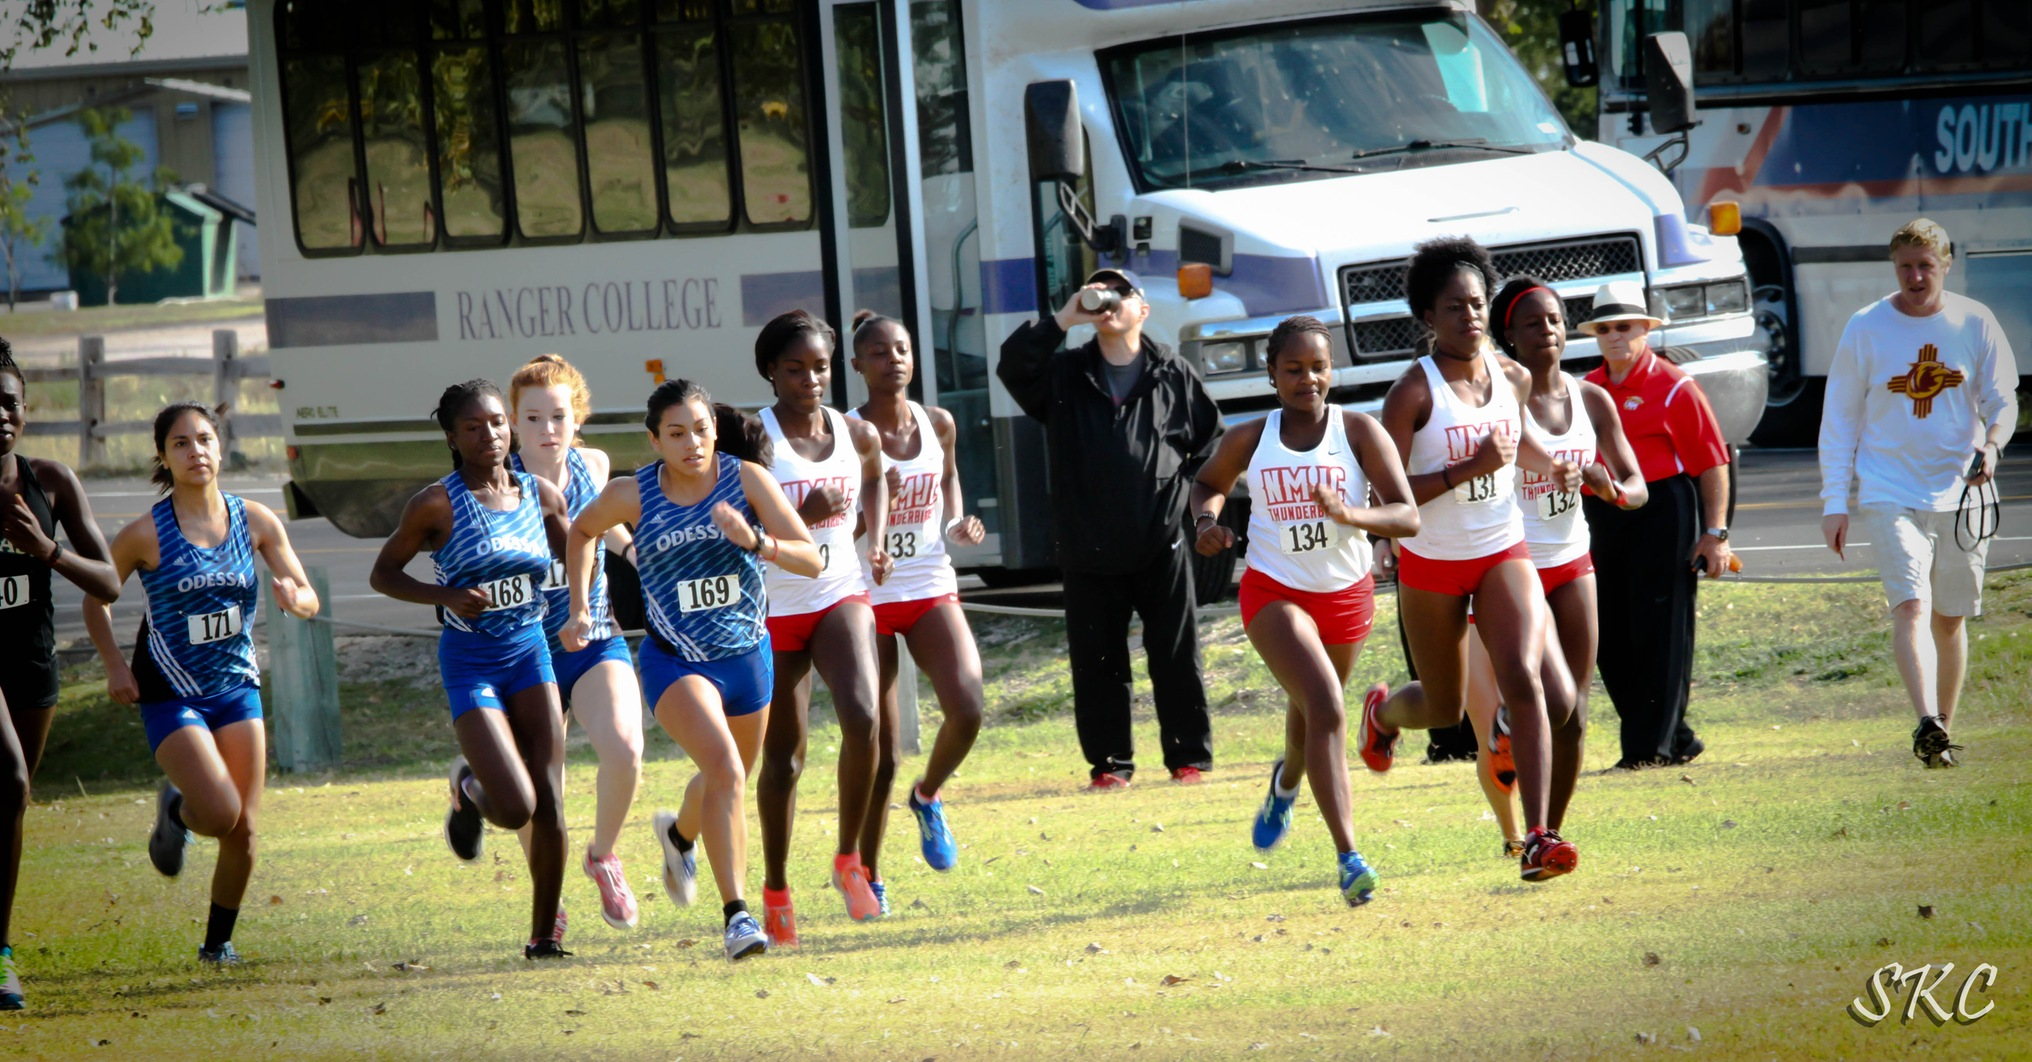 NMJC Duo of Teresha Jacobs and Esther Gitahi Win LCU Cross Country Relays